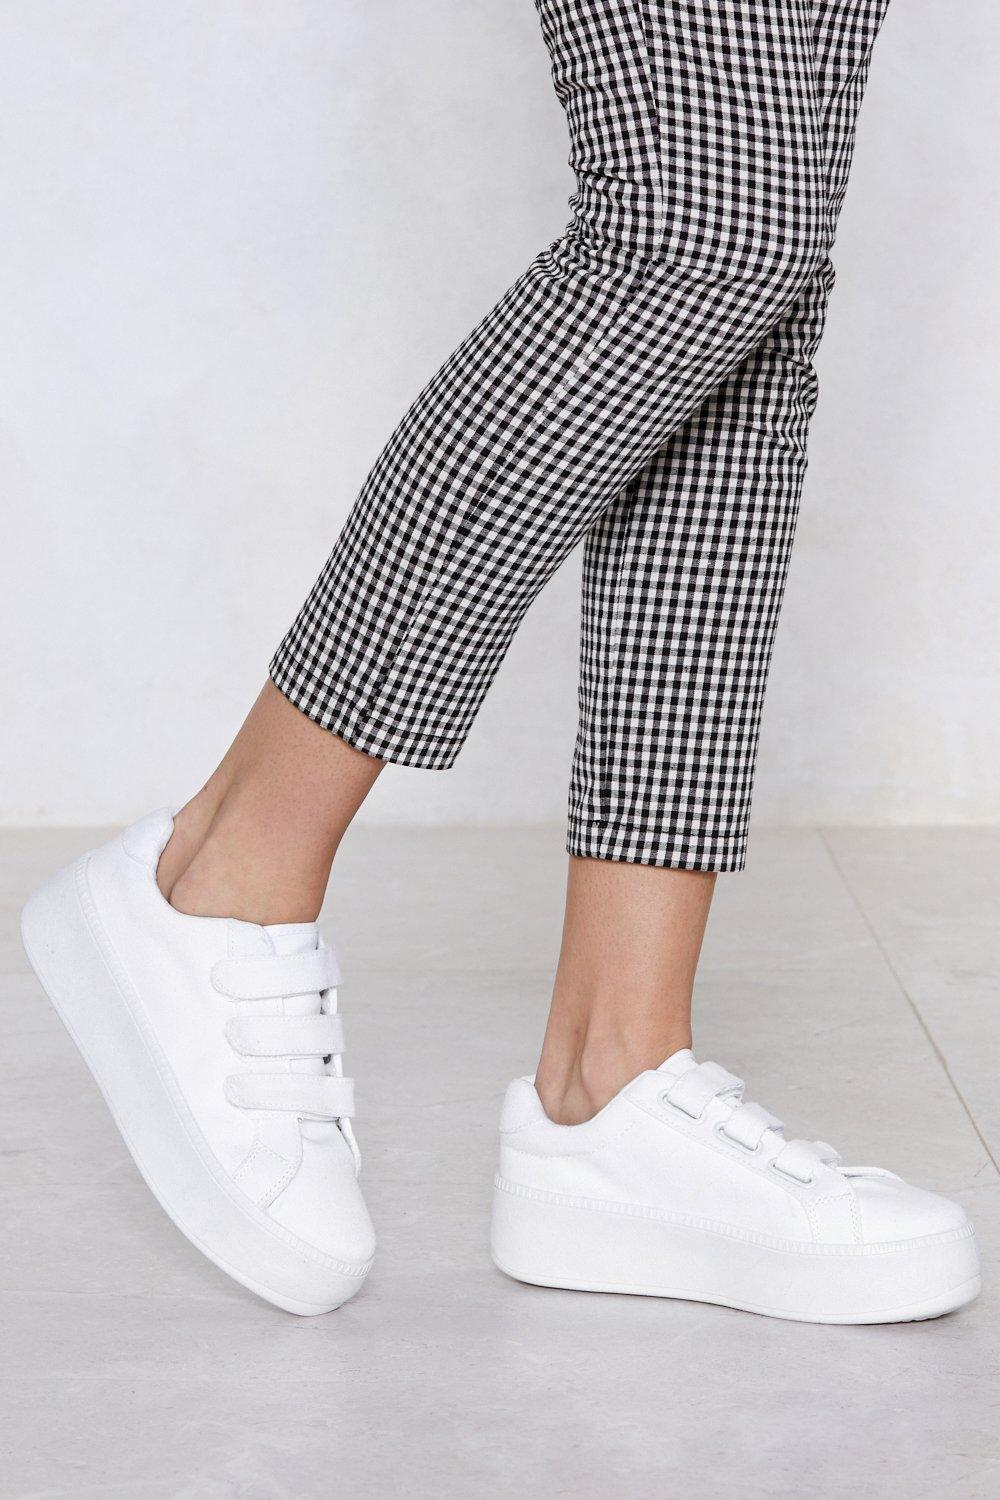 b4eaade7f You Raise Me Up Platform Sneaker | Shop Clothes at Nasty Gal!